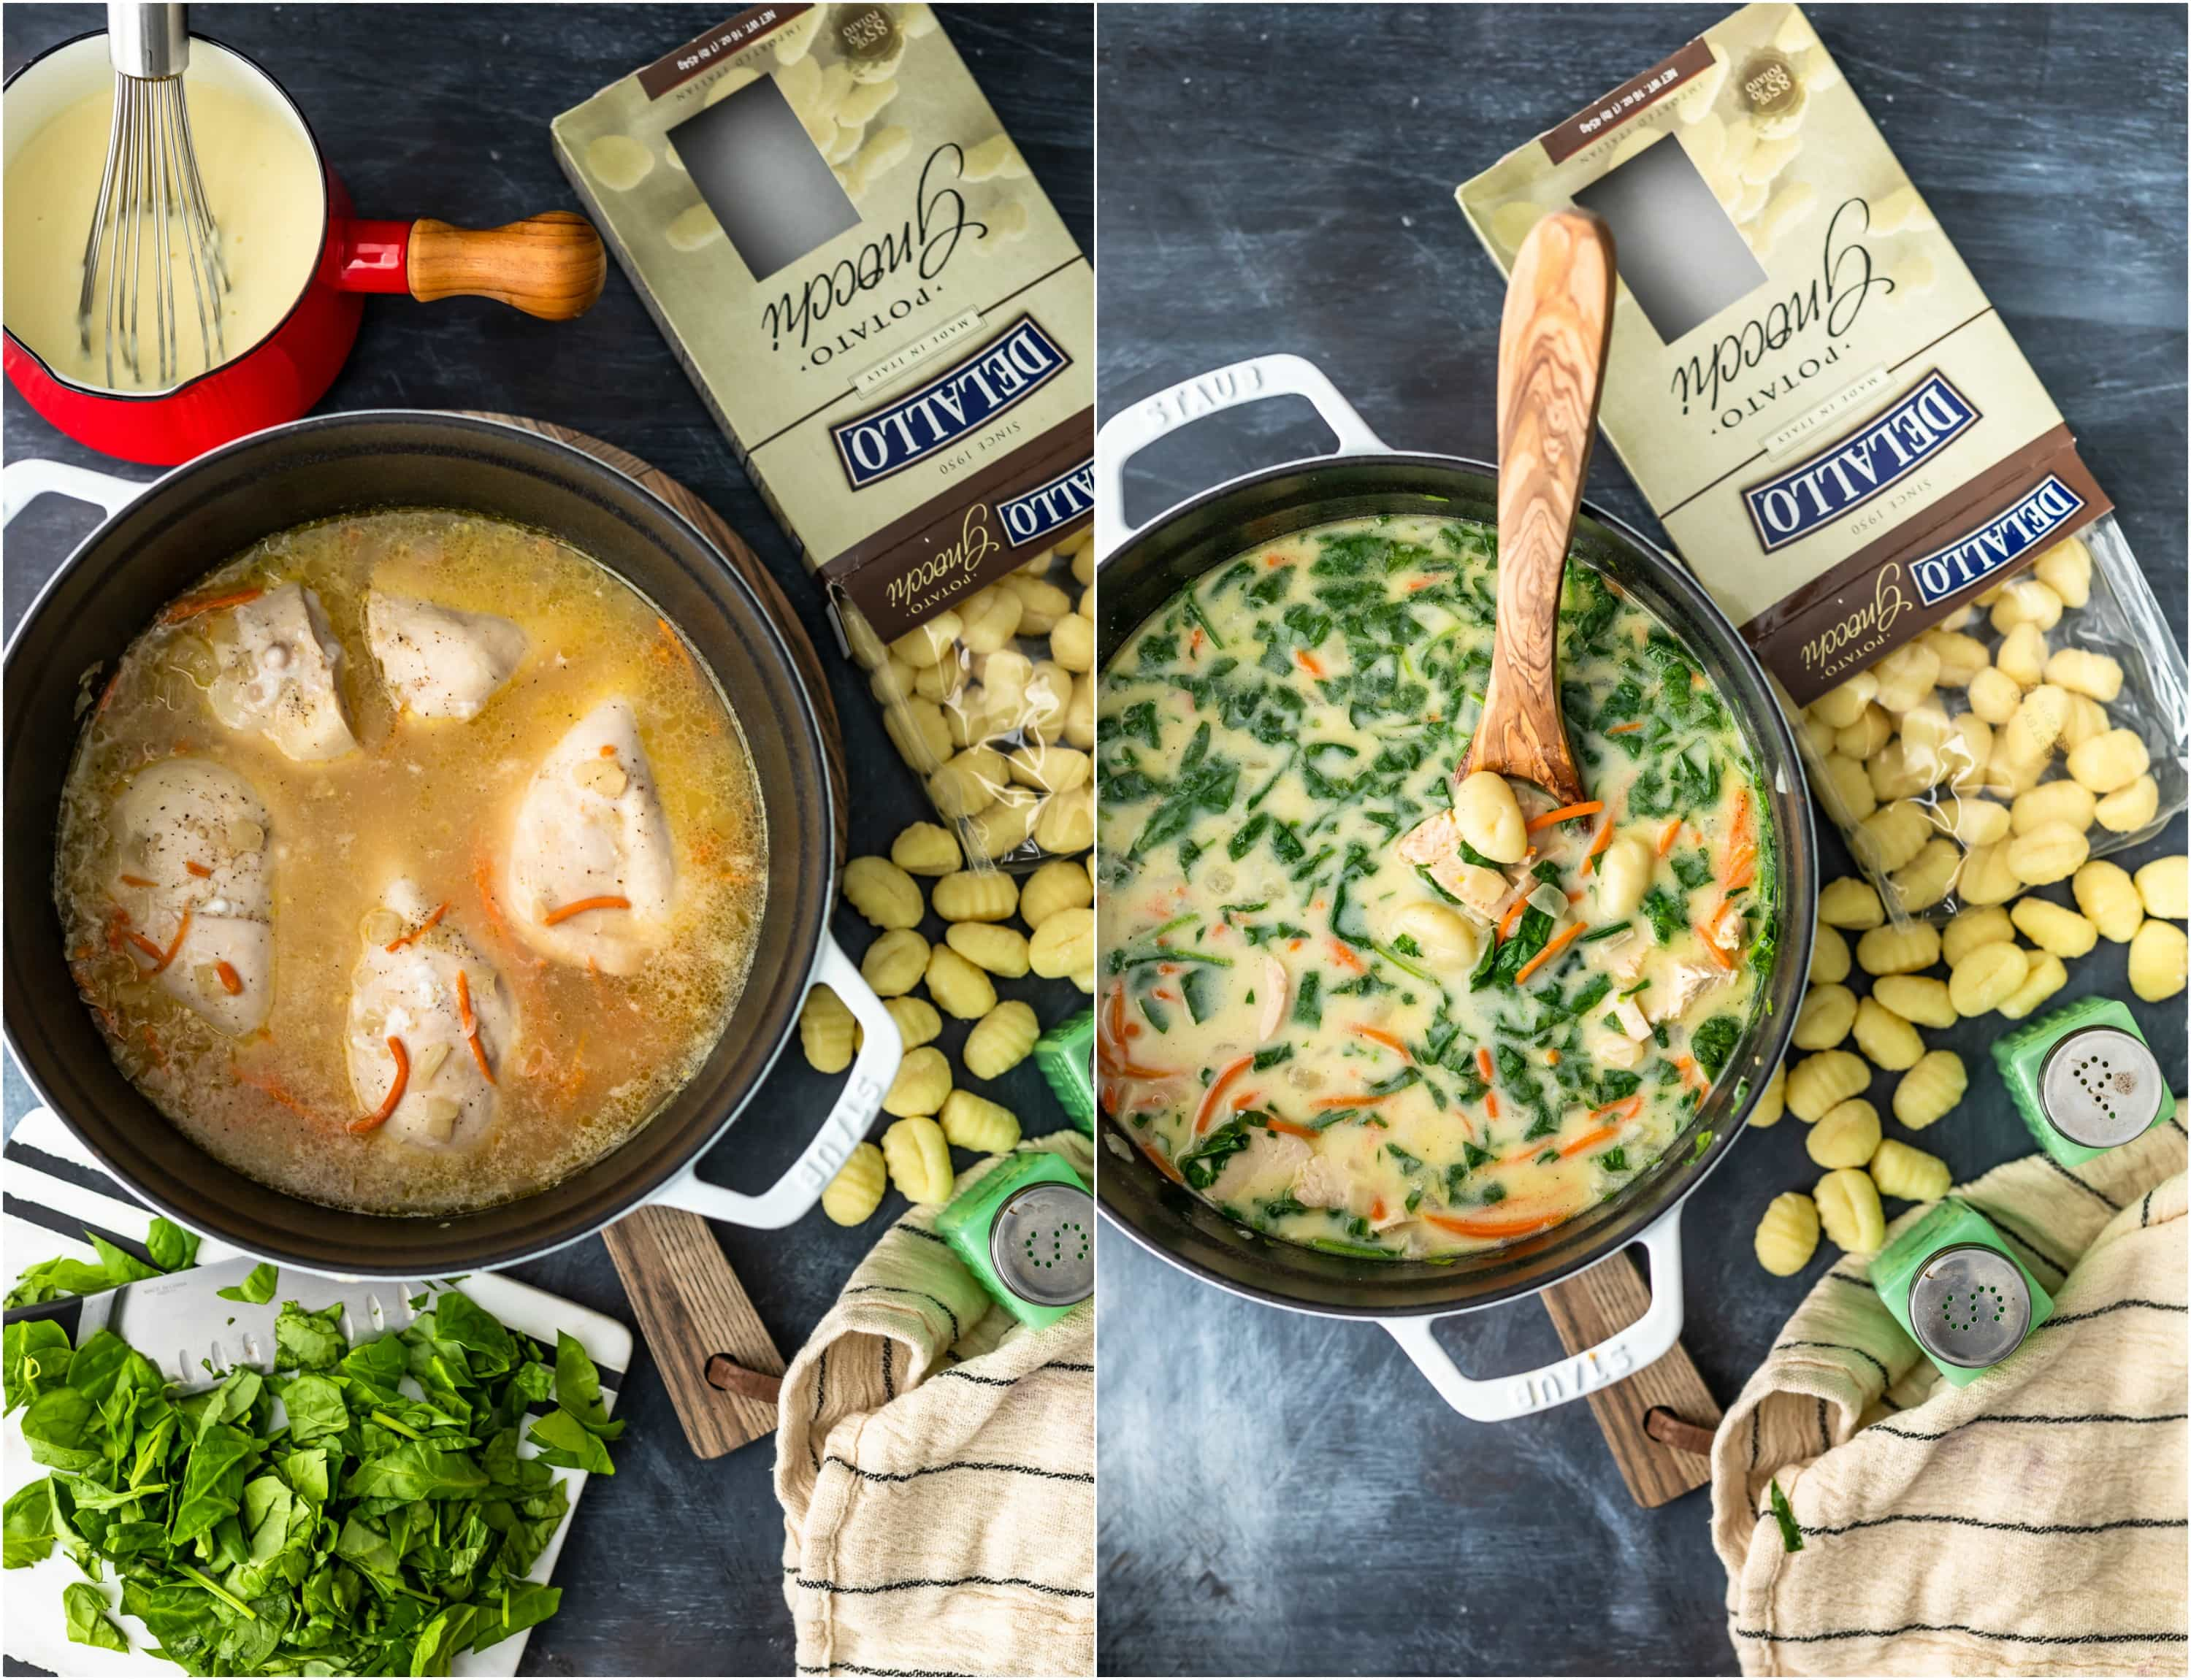 photo collage of chicken soup cooking in a pot, next to a box of gnocchi